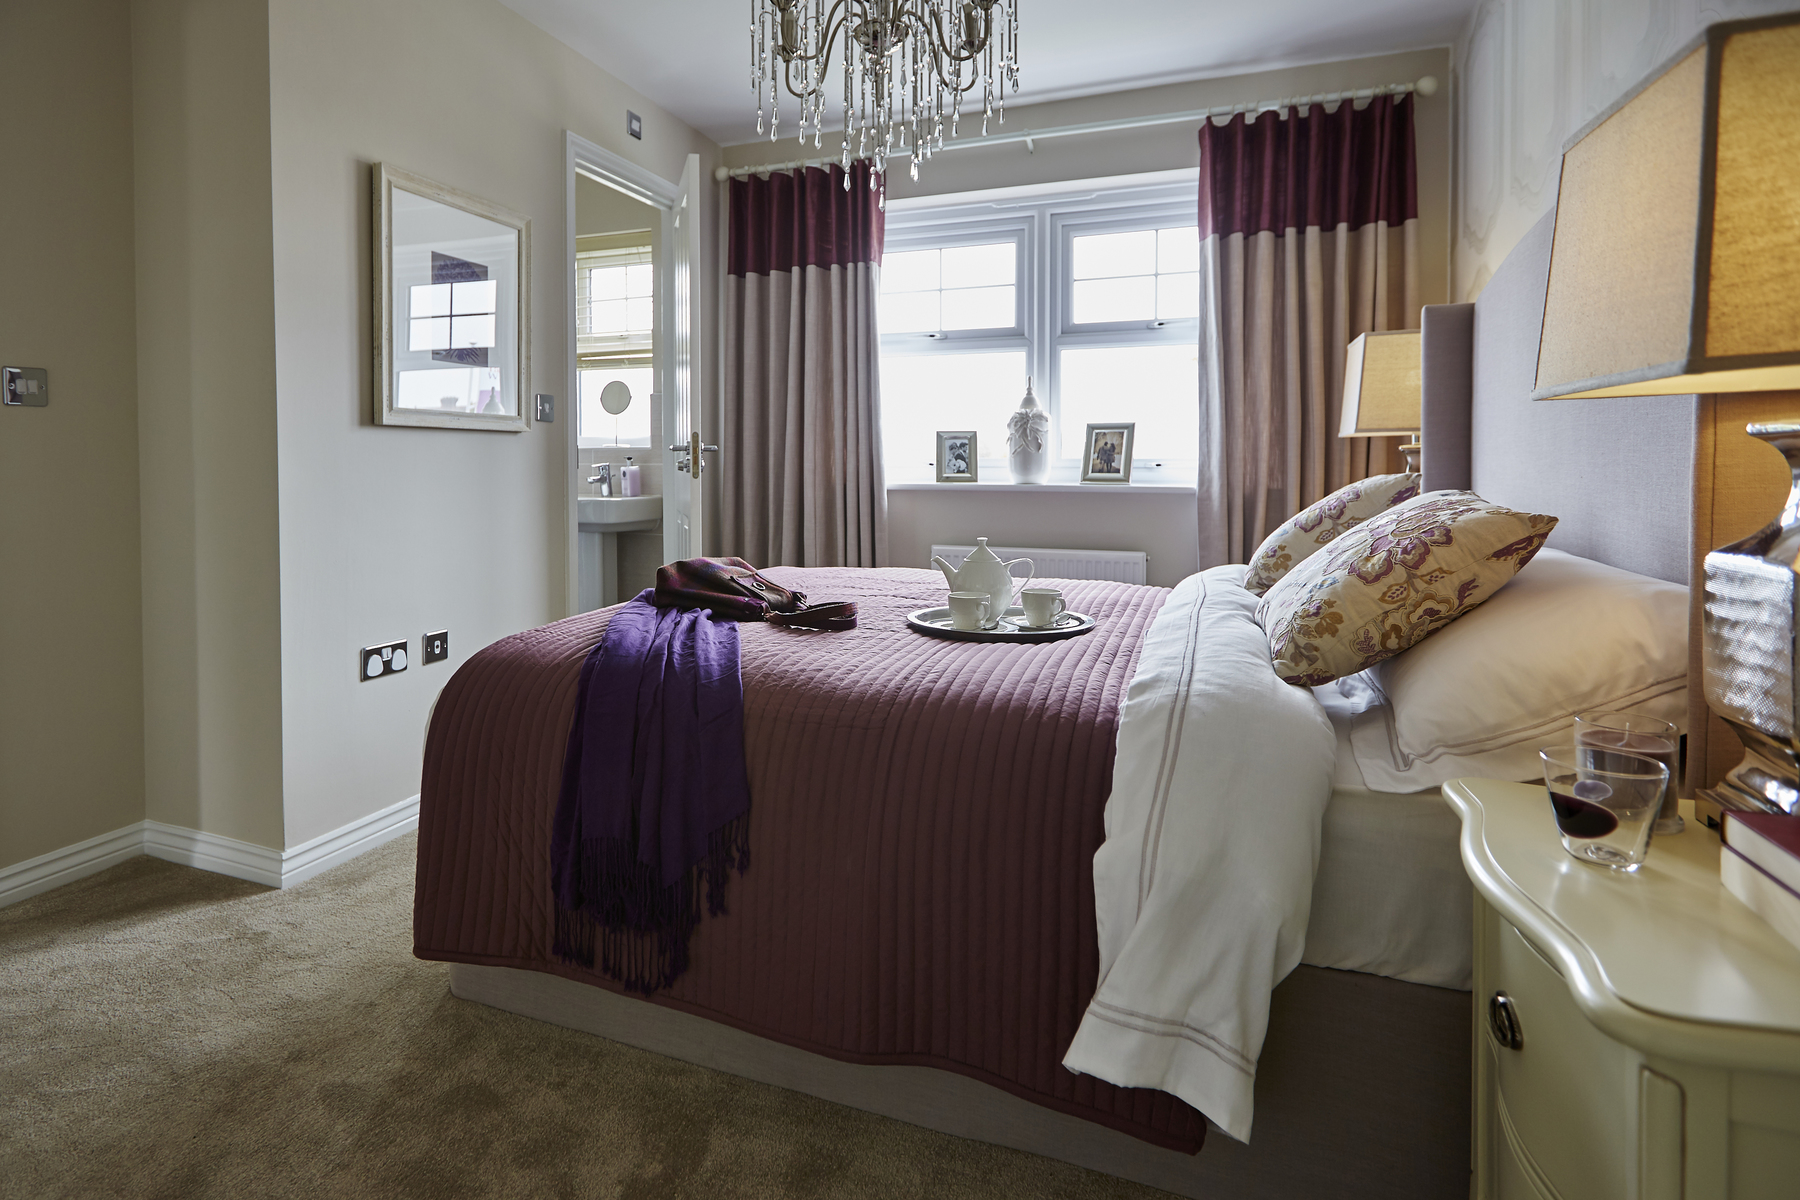 tw_man_albion_lock_sandbach_pd32_aldenham_bedroom